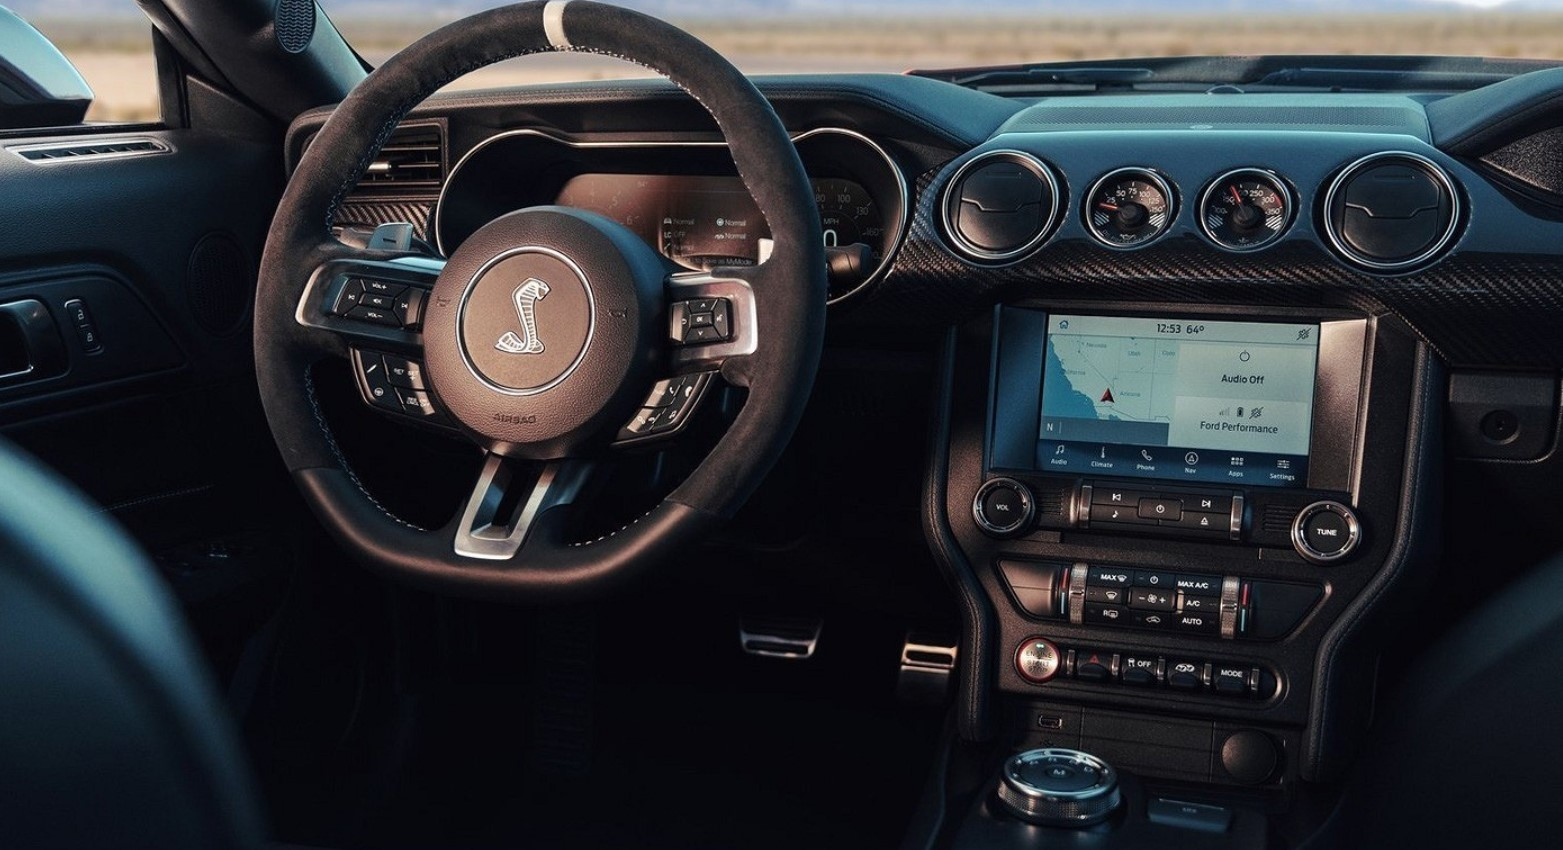 2021 Ford Mustang Shelby GT500 Interior